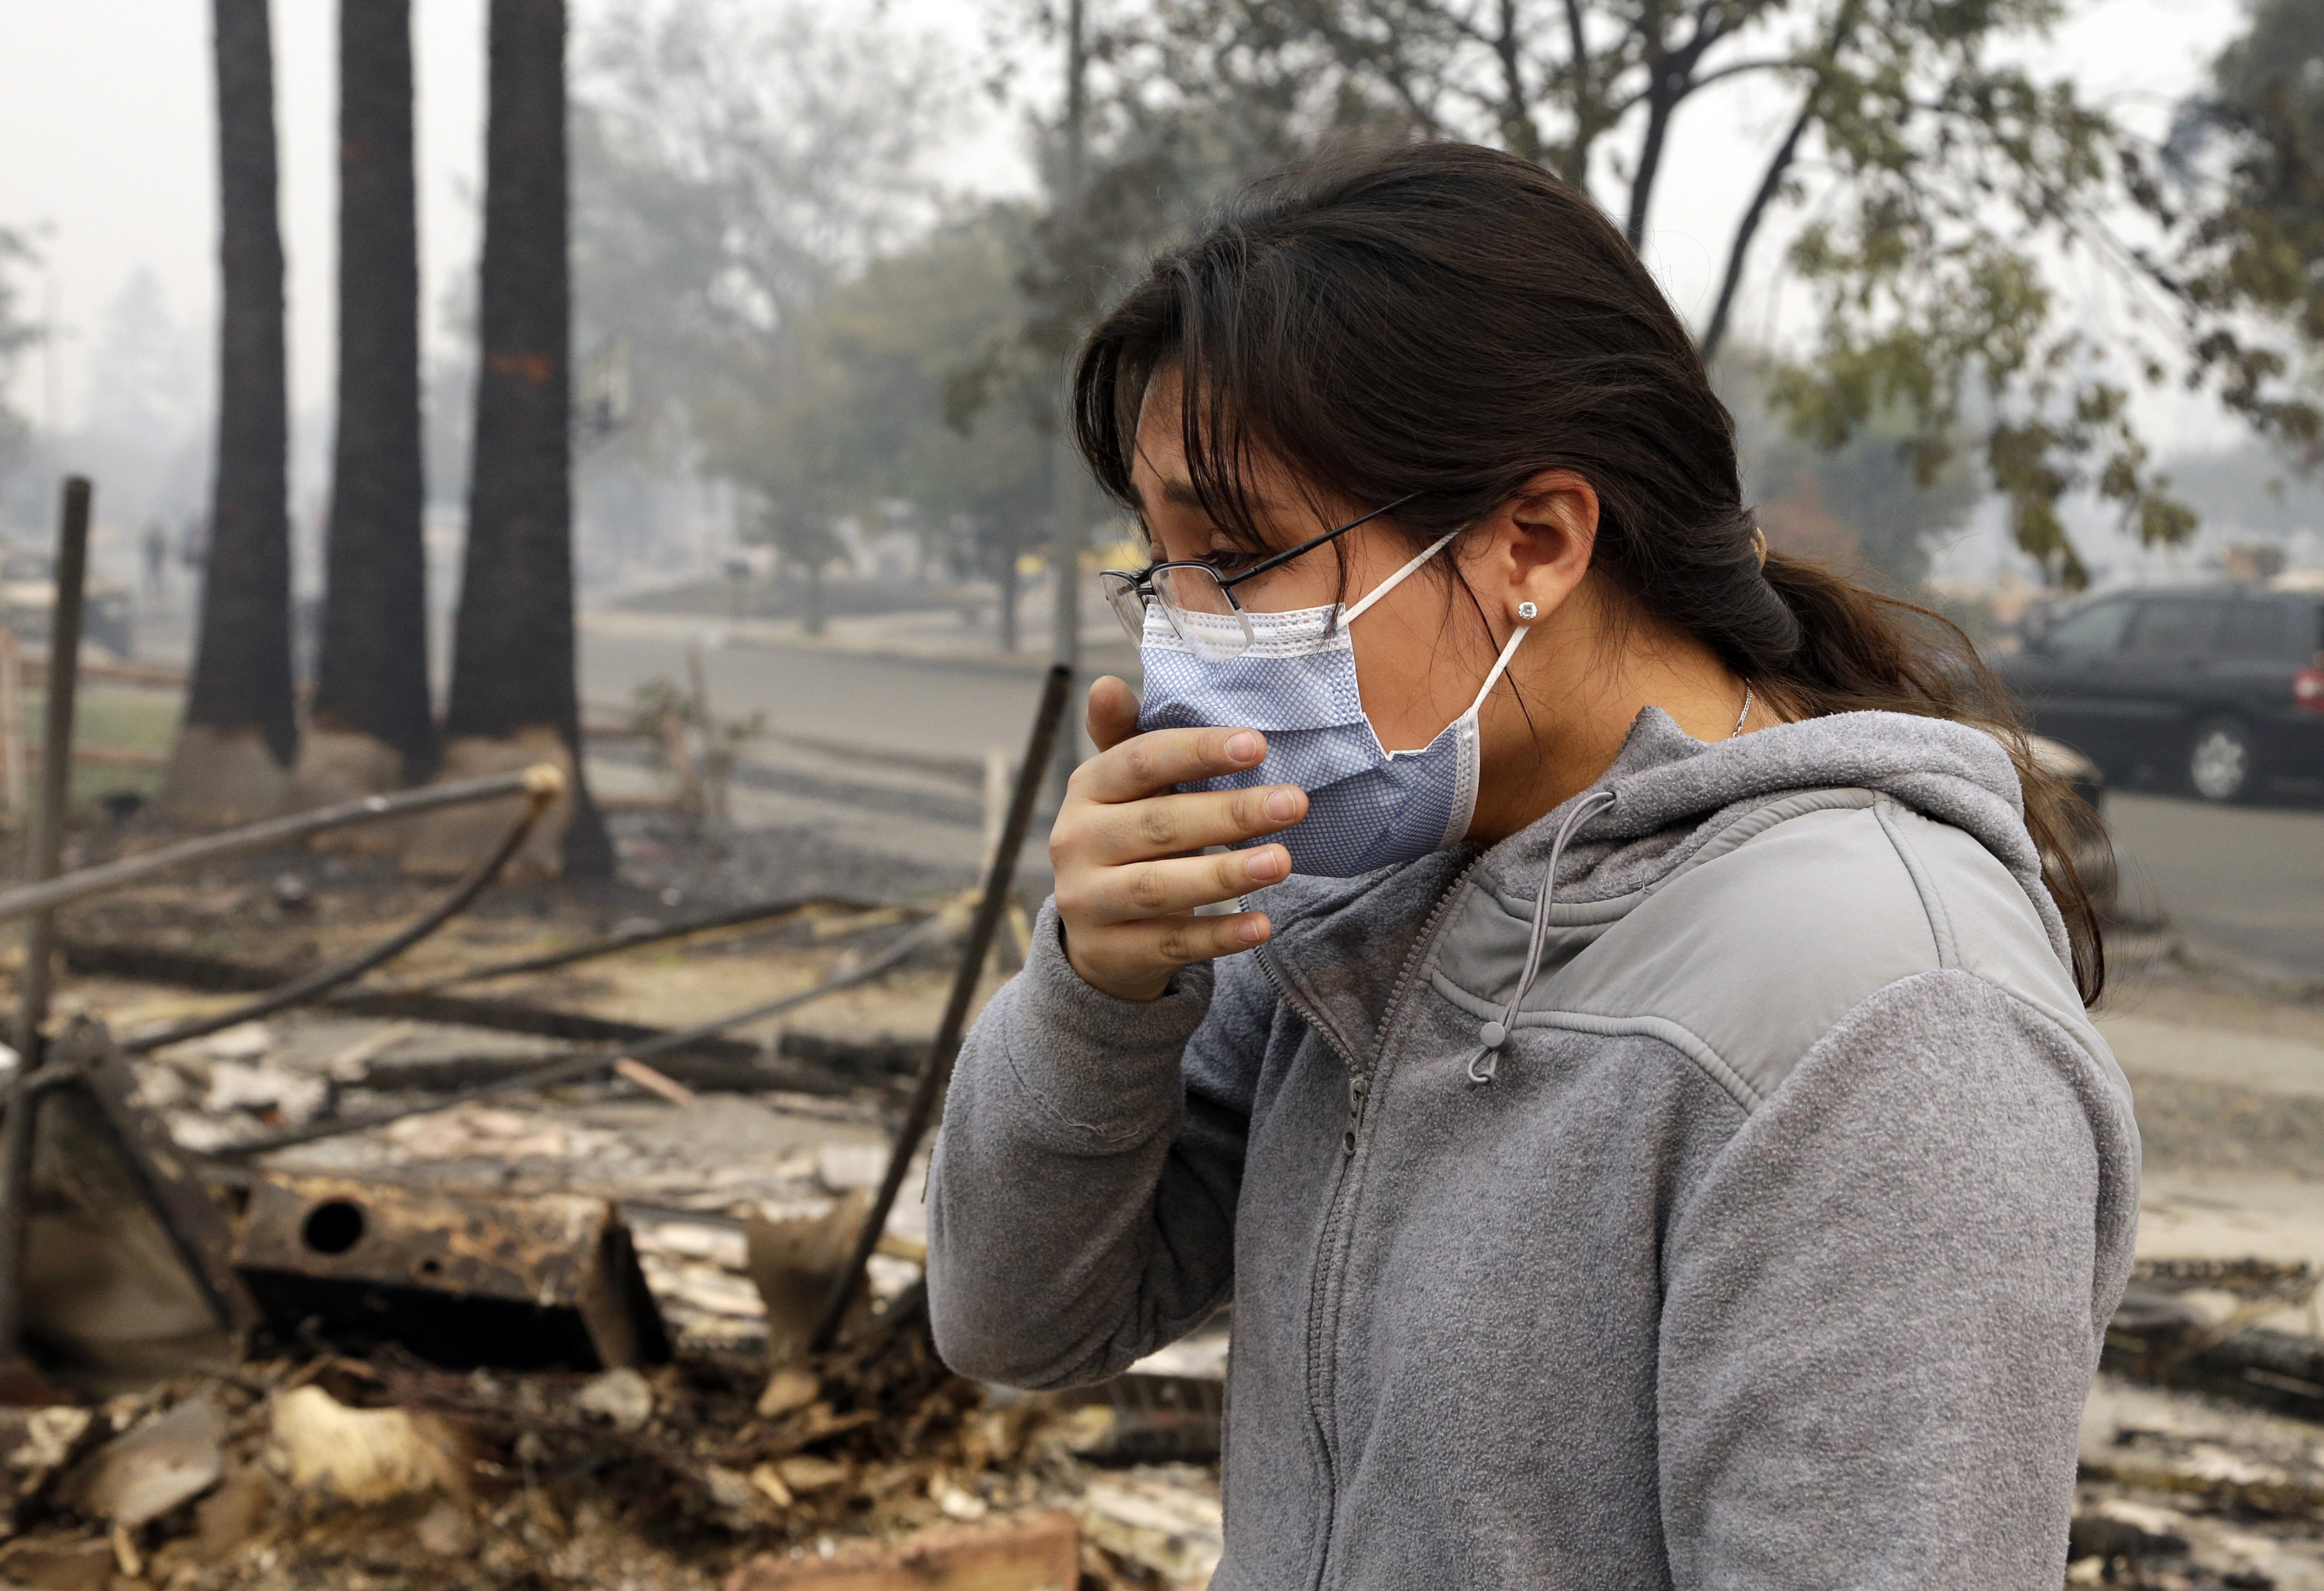 "FILE - In this Oct. 10, 2017, file photo, Leslie Garnica cries while recalling the fire which destroyed her family home in the Coffey Park area of Santa Rosa, Calif. Garnica, a 17-year-old high school senior who was born and raised in Coffey Park, liked to open her blinds and window so she could see the three palm trees in her front yard as she laid in bed and listened to music. ""This is all I've ever known, and it's kind of weird knowing that you have to start again, find something new,"" Garnica said. ""This is what I'm used to. But I don't have it anymore."" (AP Photo/Ben Margot, File)"